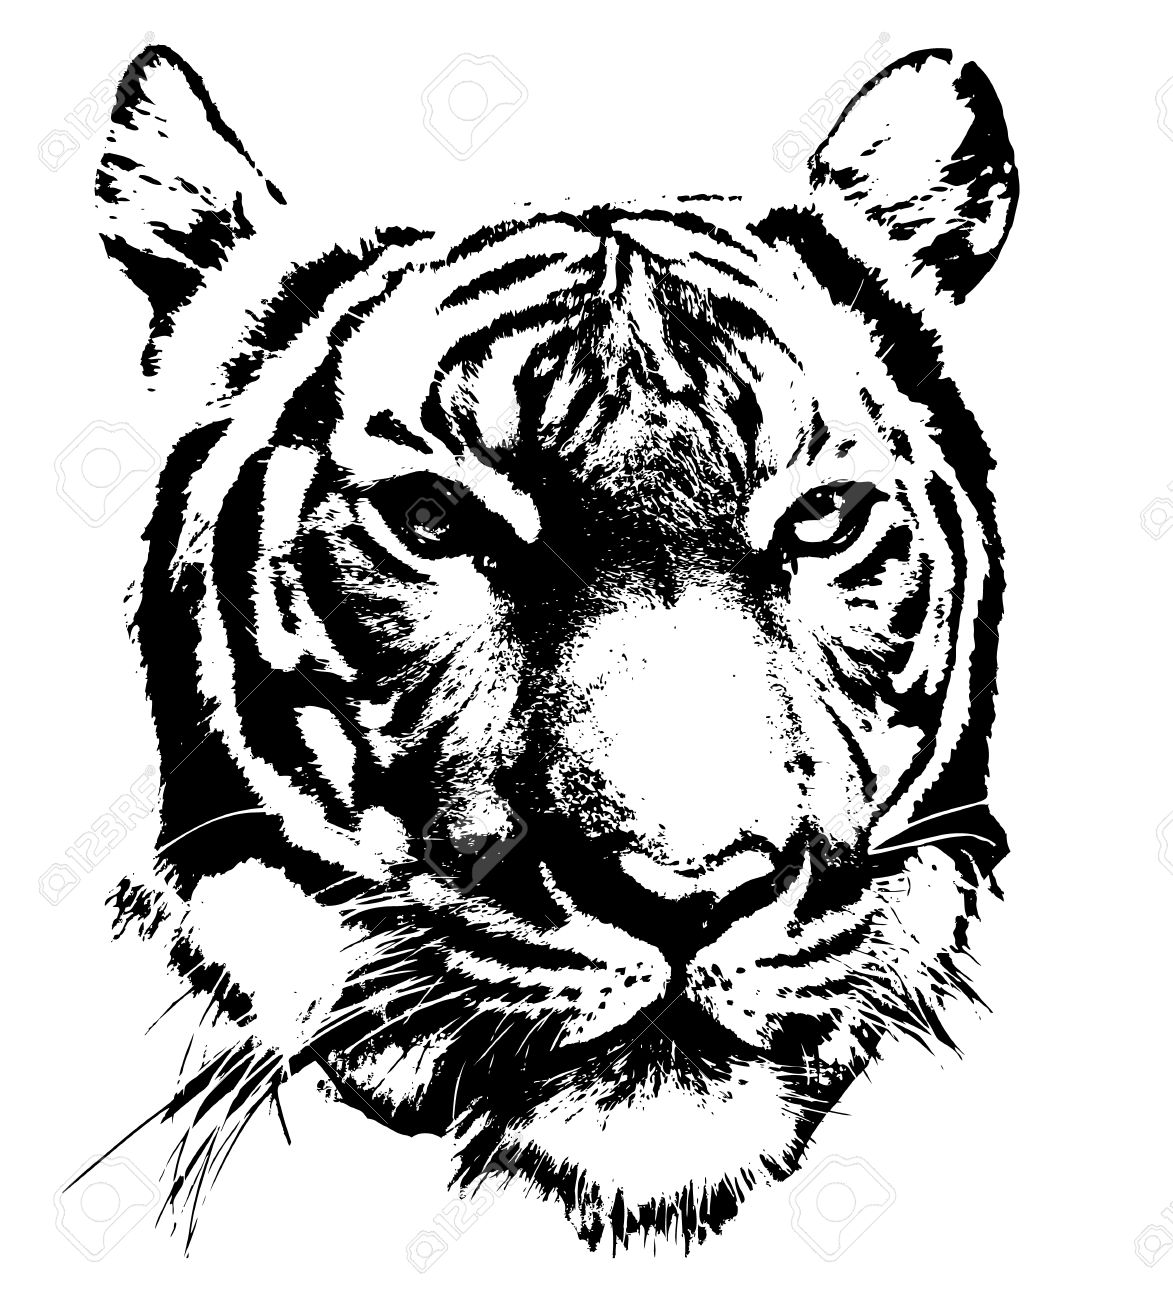 black and white silhouette of a tiger s face royalty free cliparts